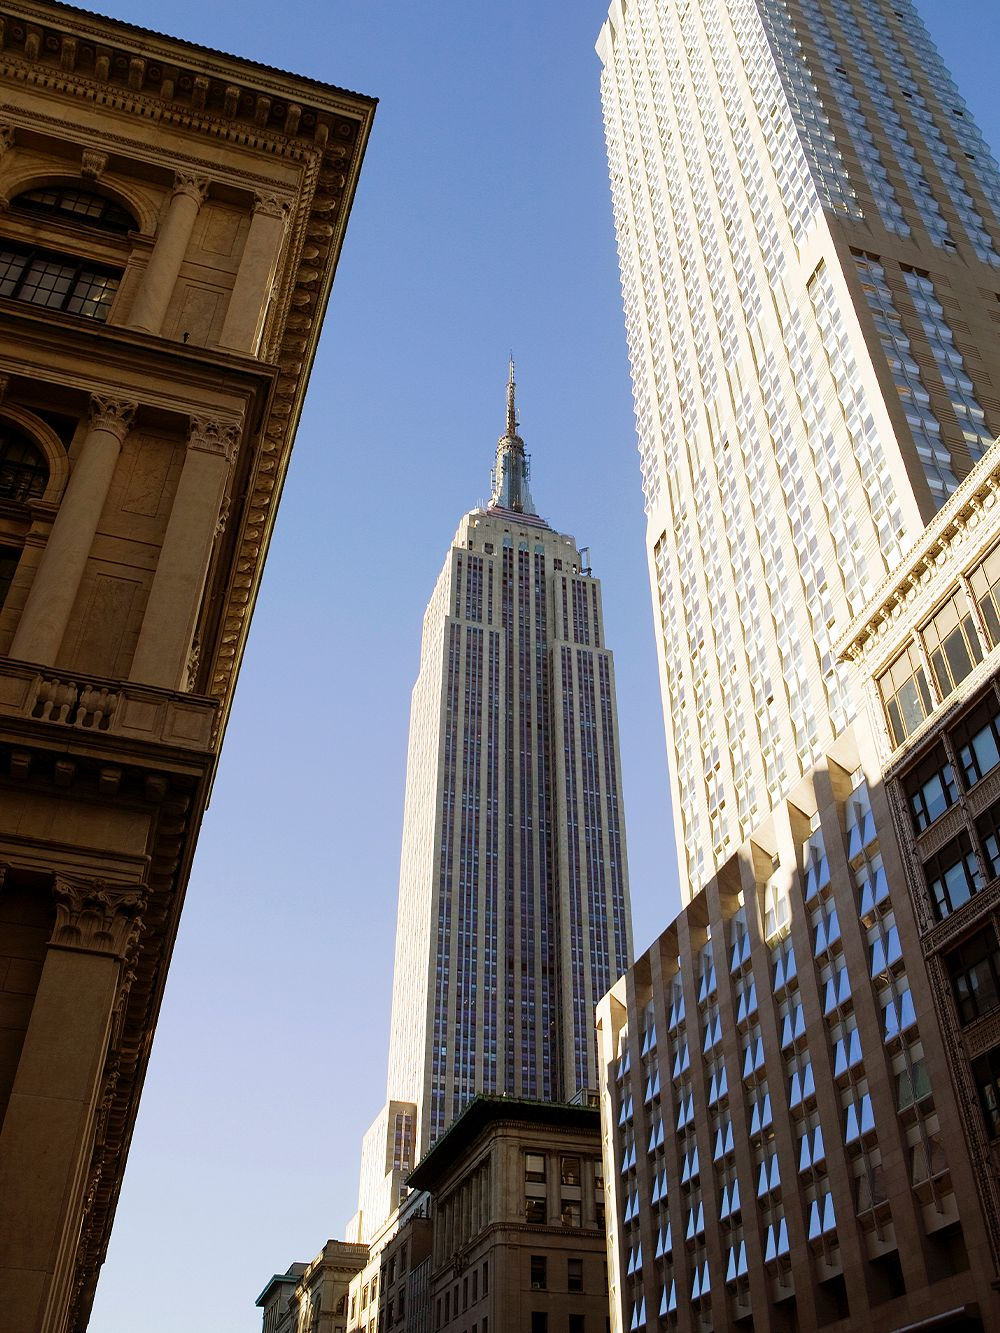 New York on foot: Fifth Avenue, Empire State Building